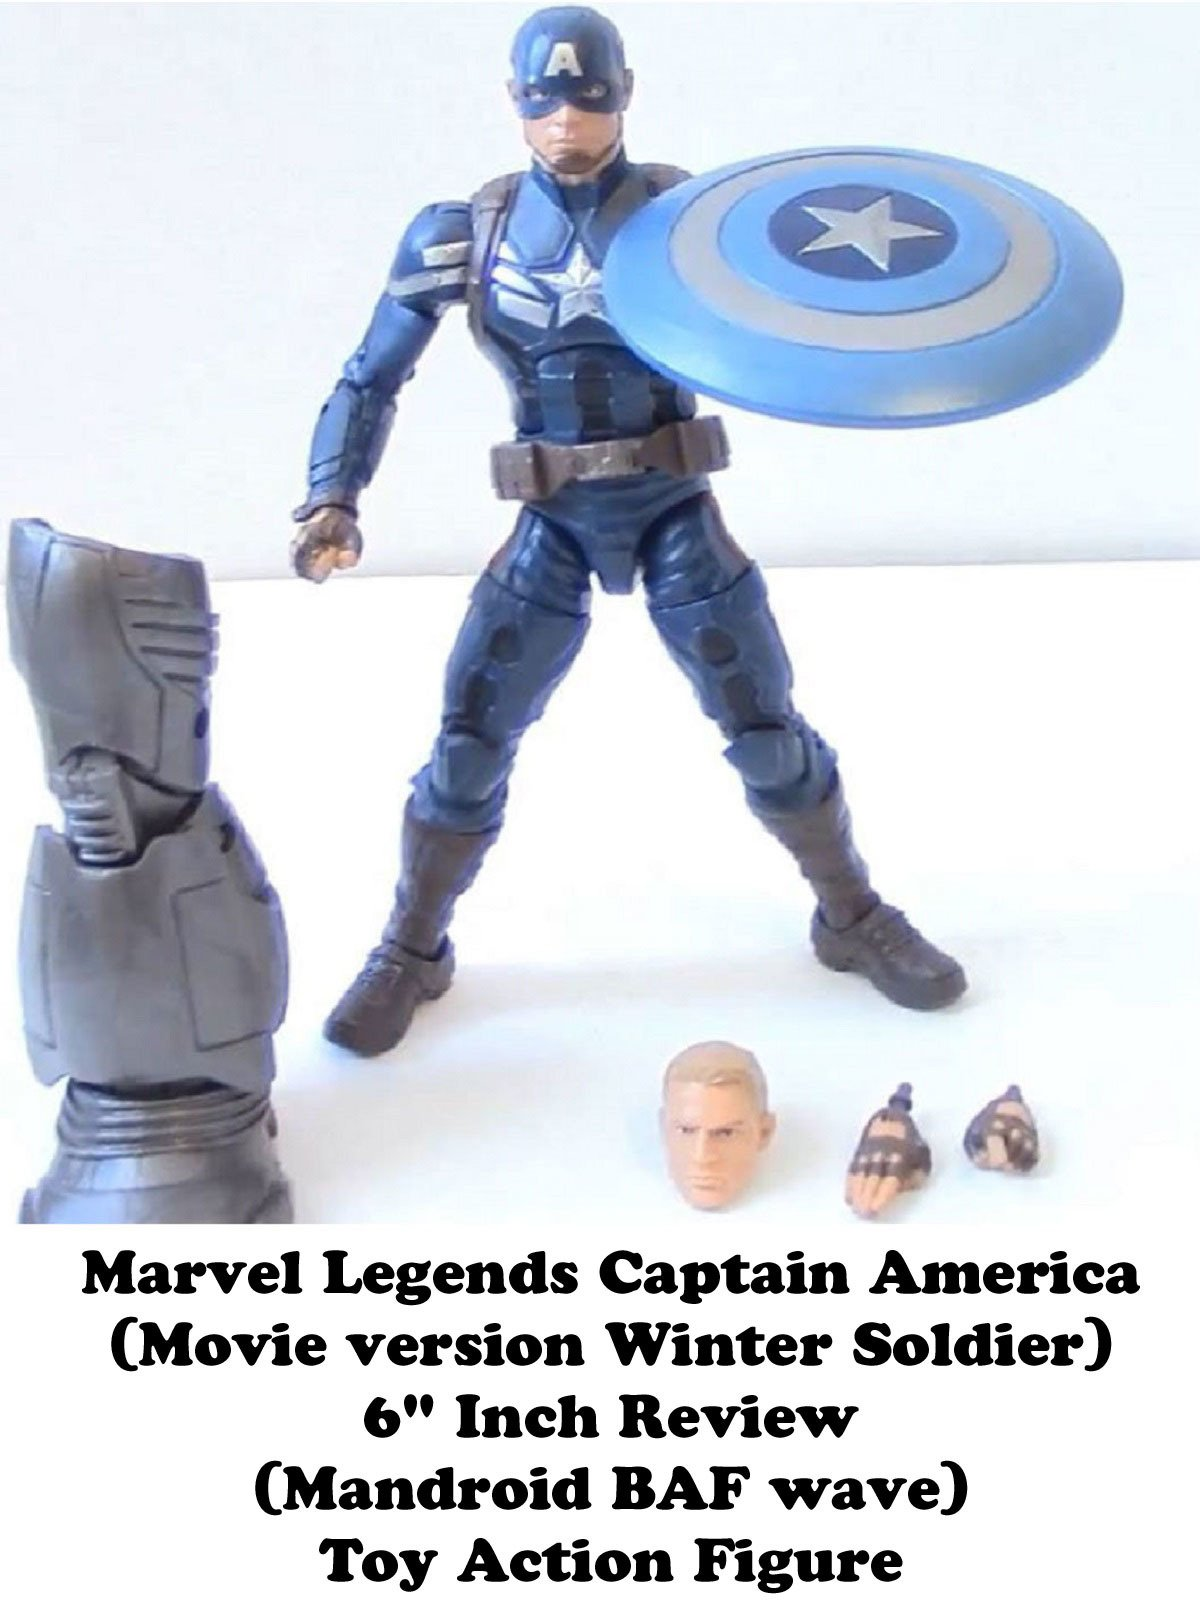 "Review: Marvel Legends Captain America (Movie version Winter Soldier) 6"" Inch Review (Mandroid BAF wave) Toy Action Figure"